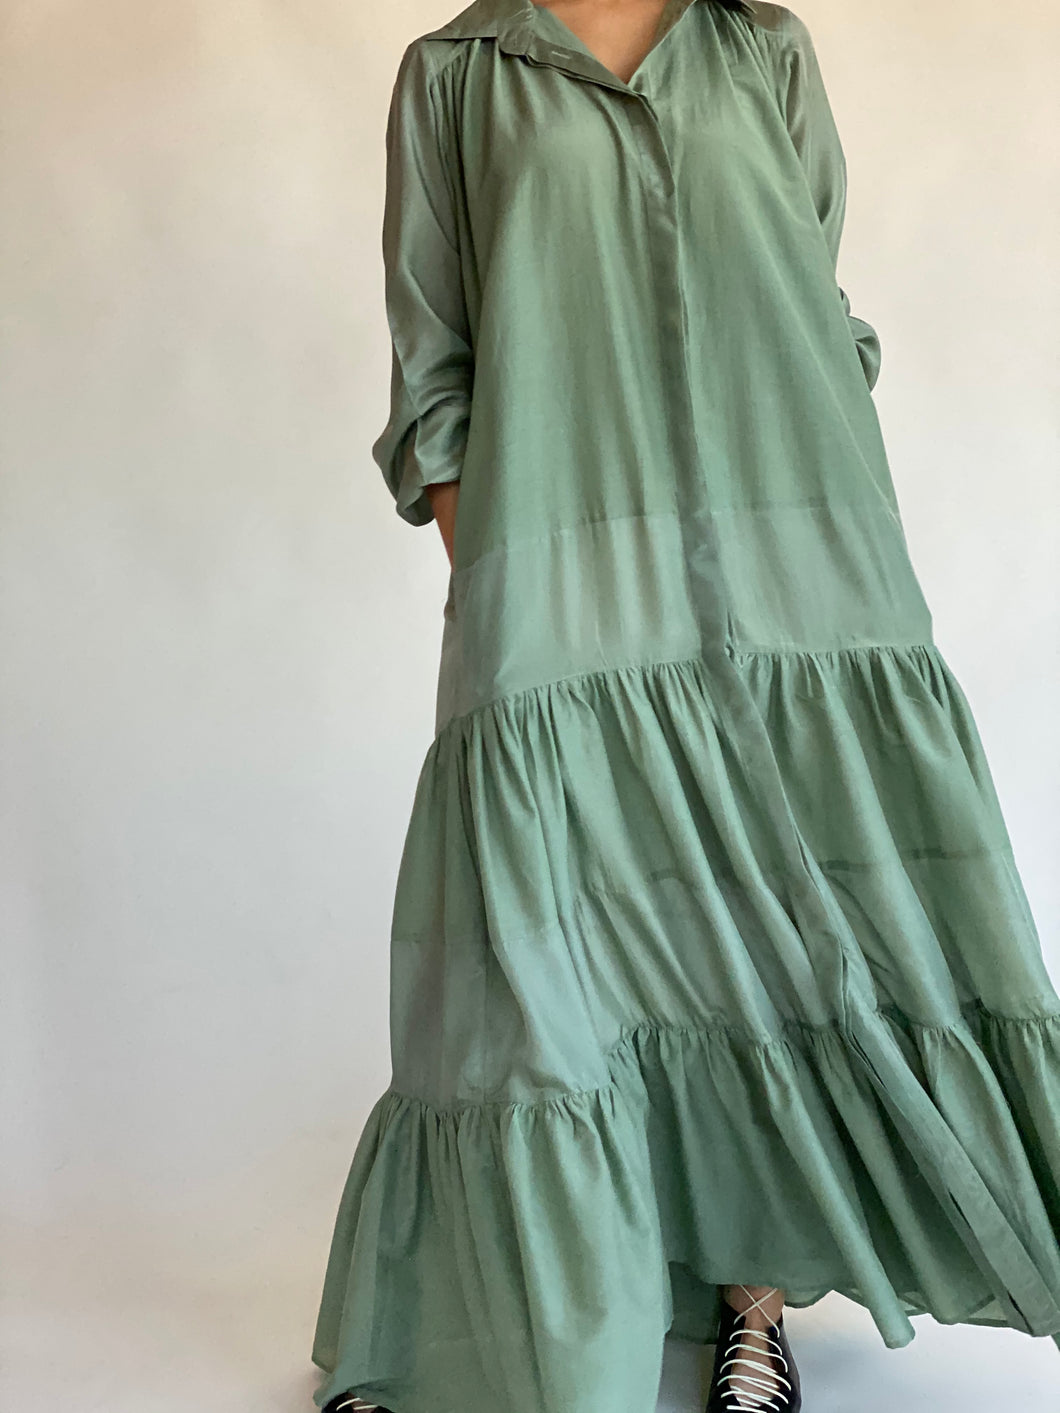 LB- Prairie Dress / longer version